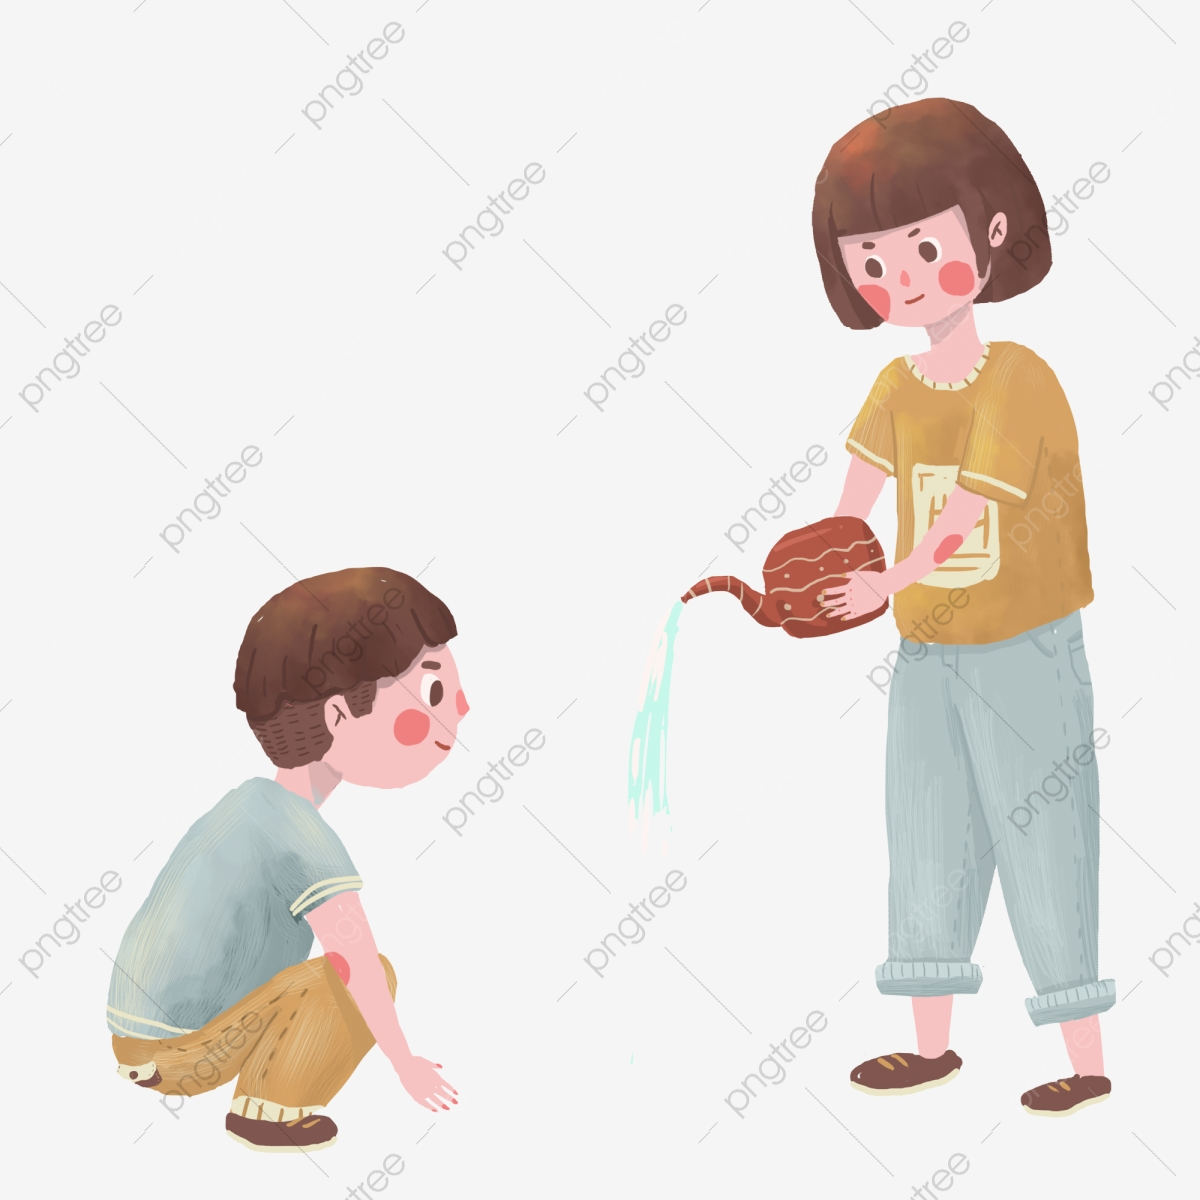 Cartoon Young Girl Planting Fresh Tree Cartoon Fresh Cute Png Transparent Clipart Image And Psd File For Free Download Watch cartoons online both cartoons movies and cartoons series online for free. https pngtree com freepng cartoon young girl planting fresh tree 4378910 html